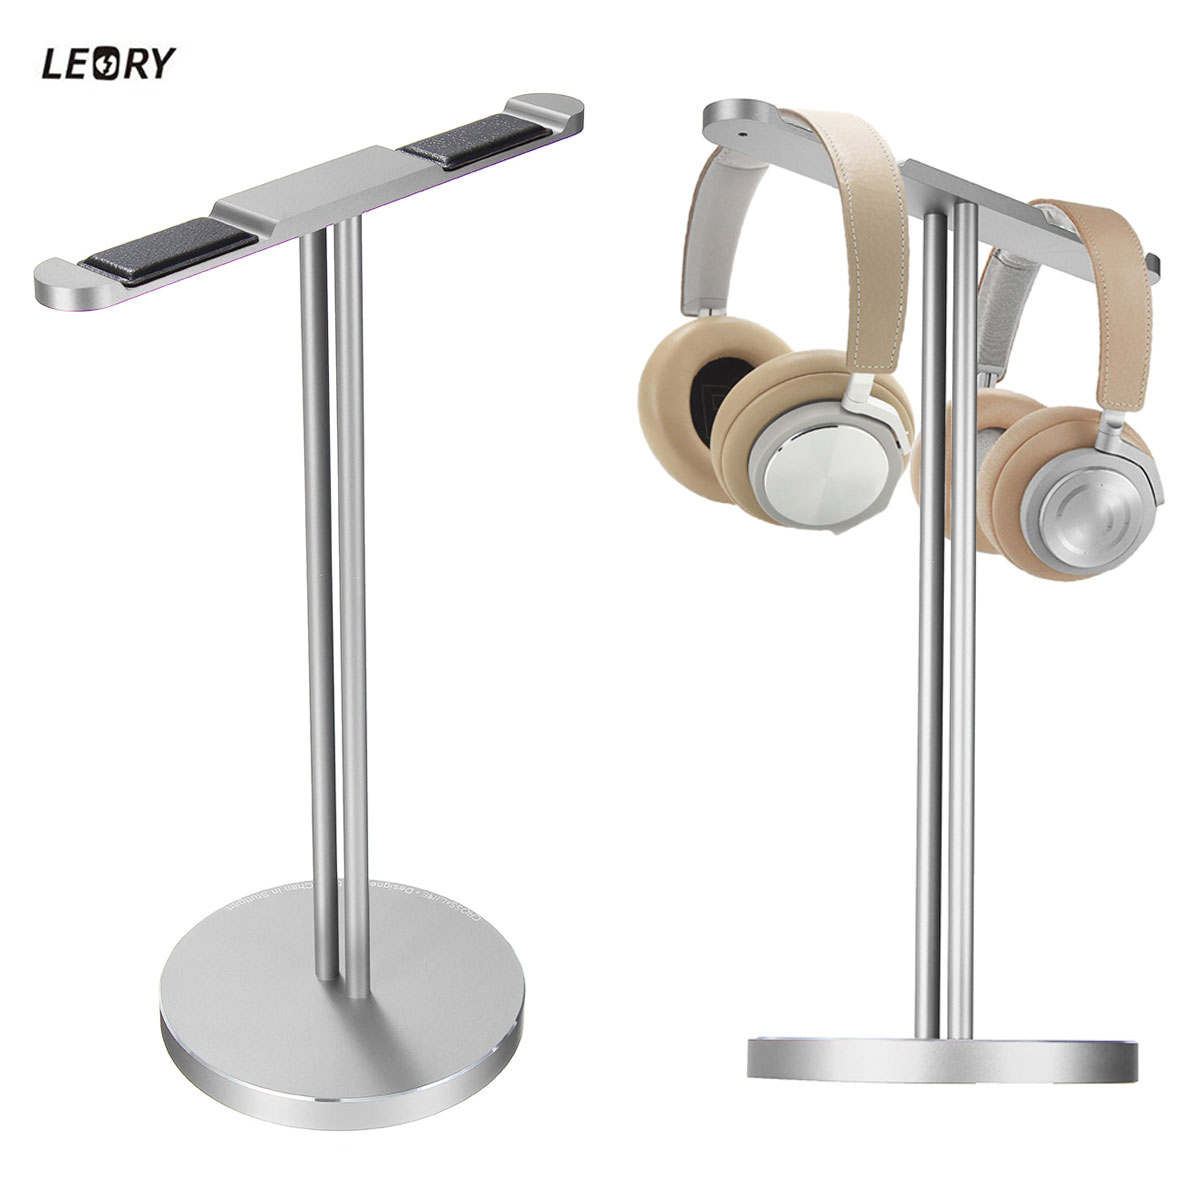 Original LEORY Aluminum Headphone Headset Holder Stand Dual Hanger Holder Earphone Desk Display Rack Stand For Game Headphones